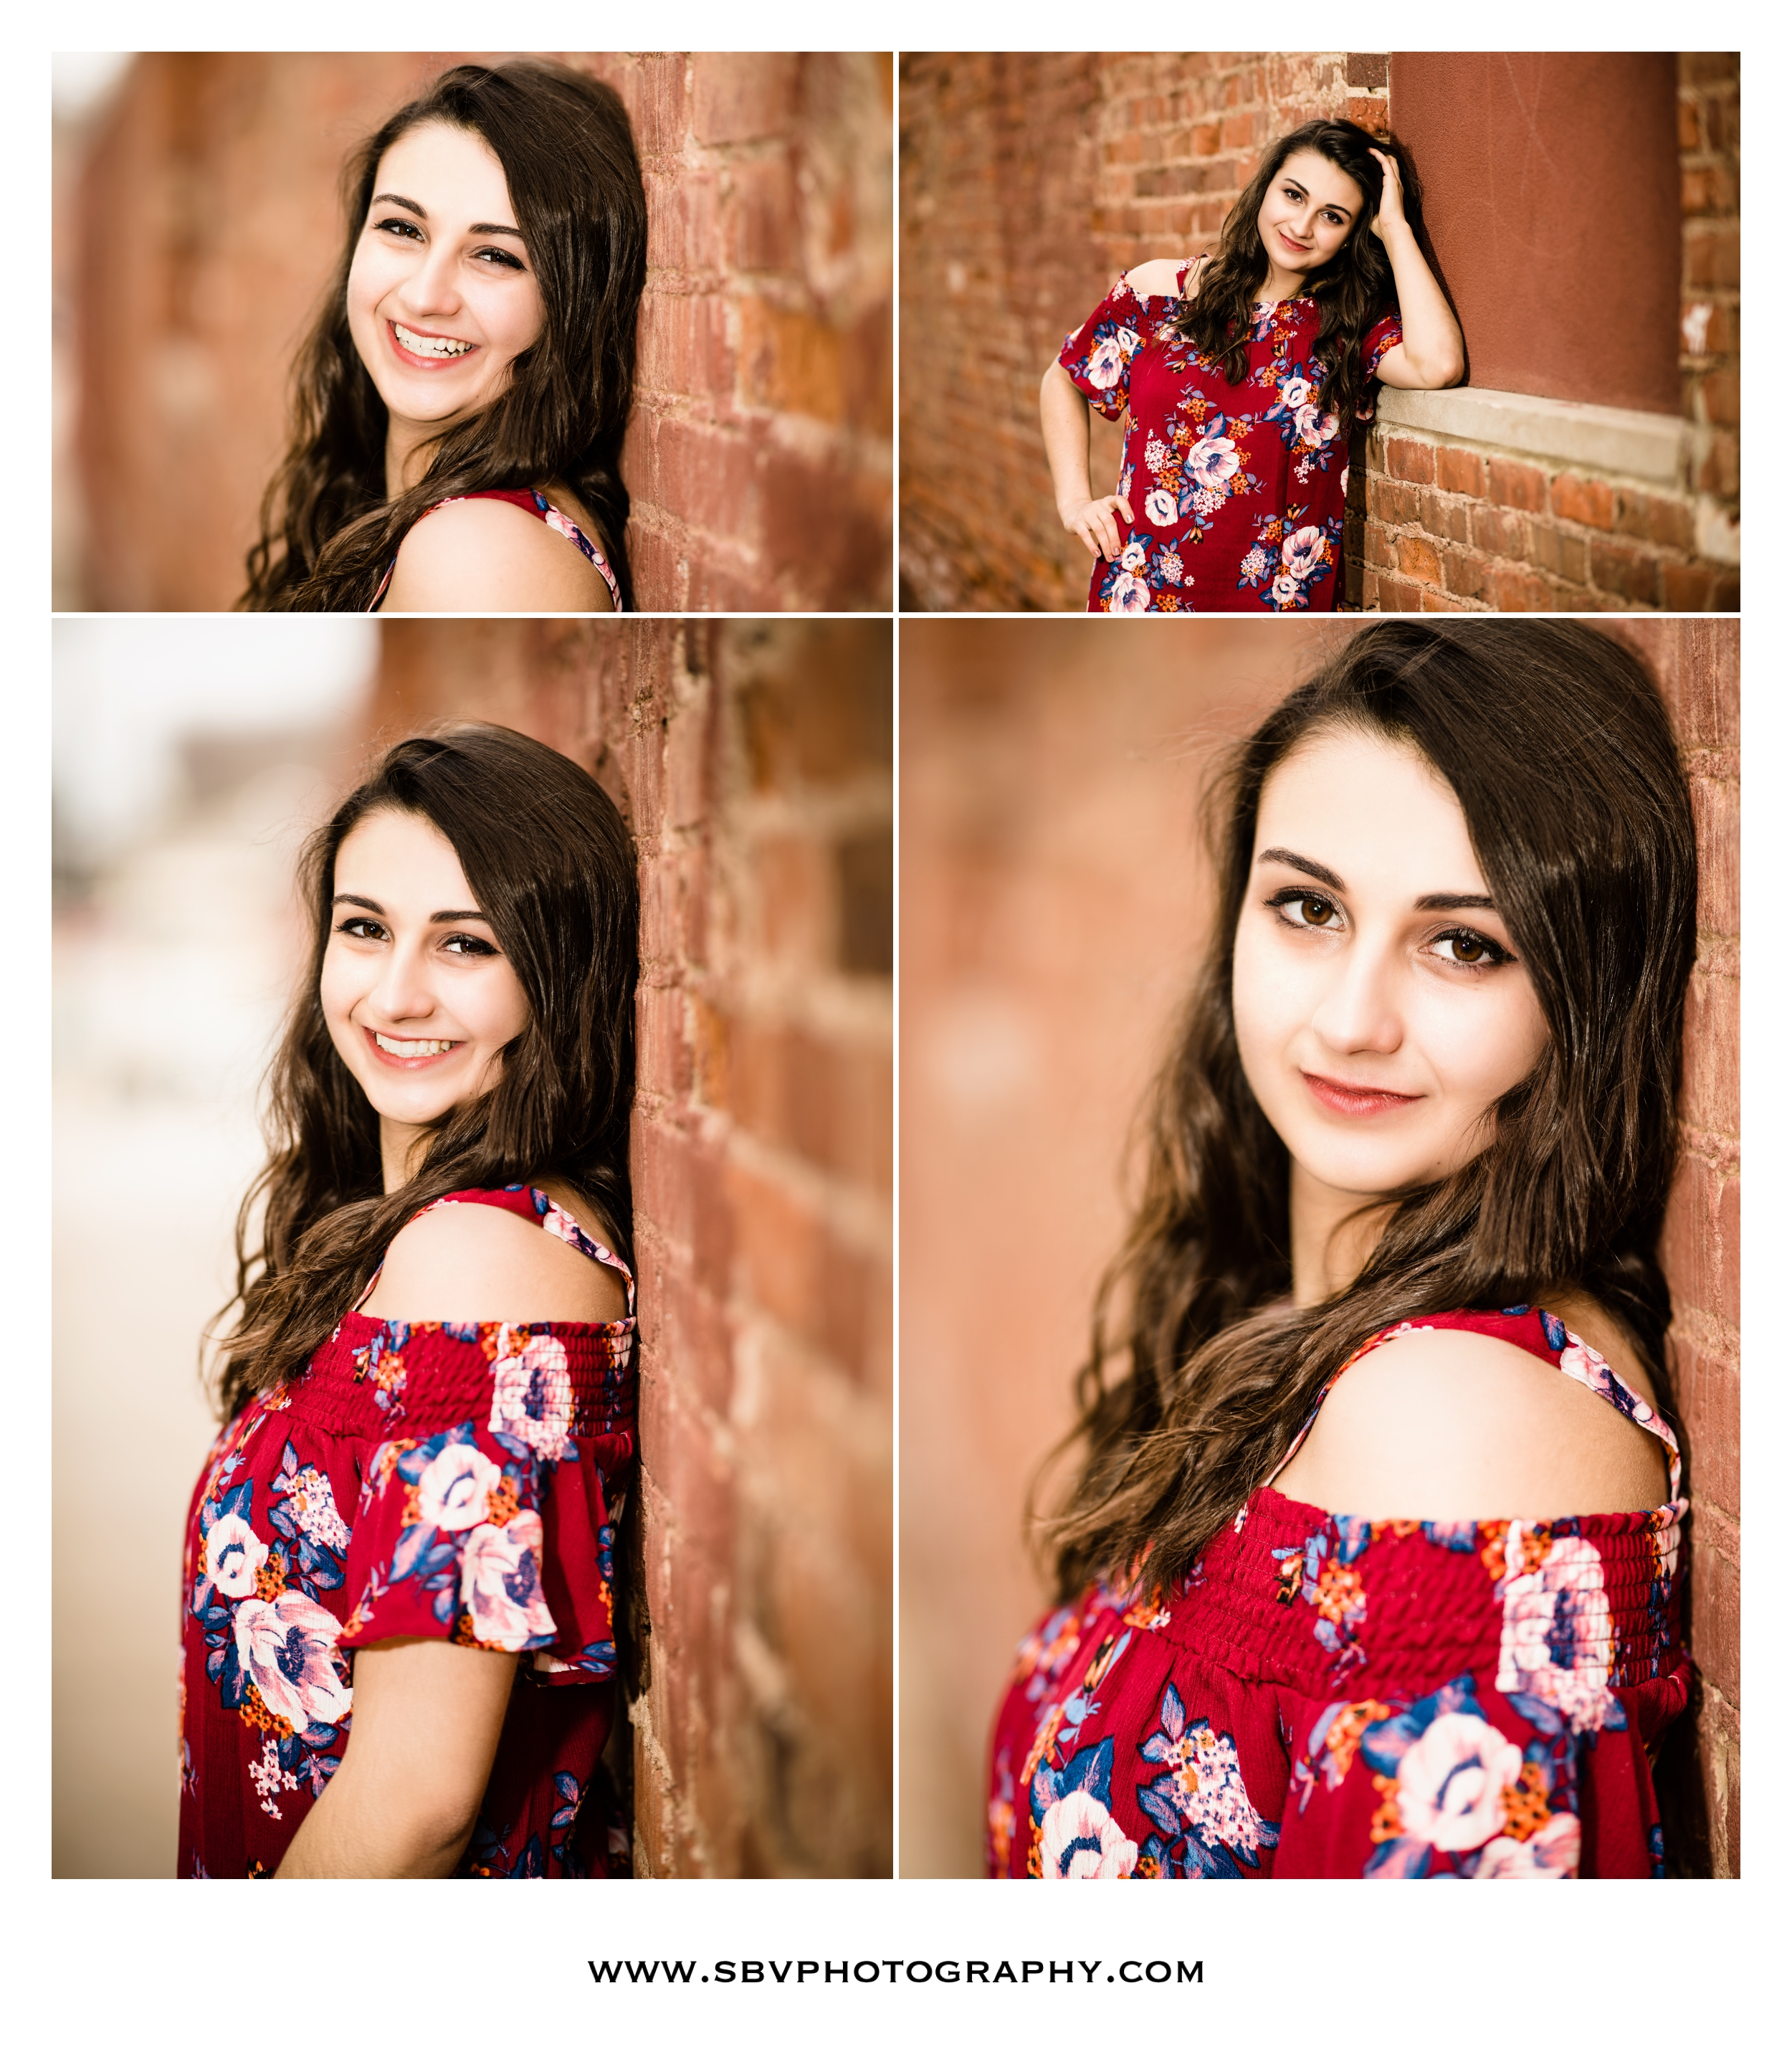 senior-girl-red-dress-brick-wall.jpg